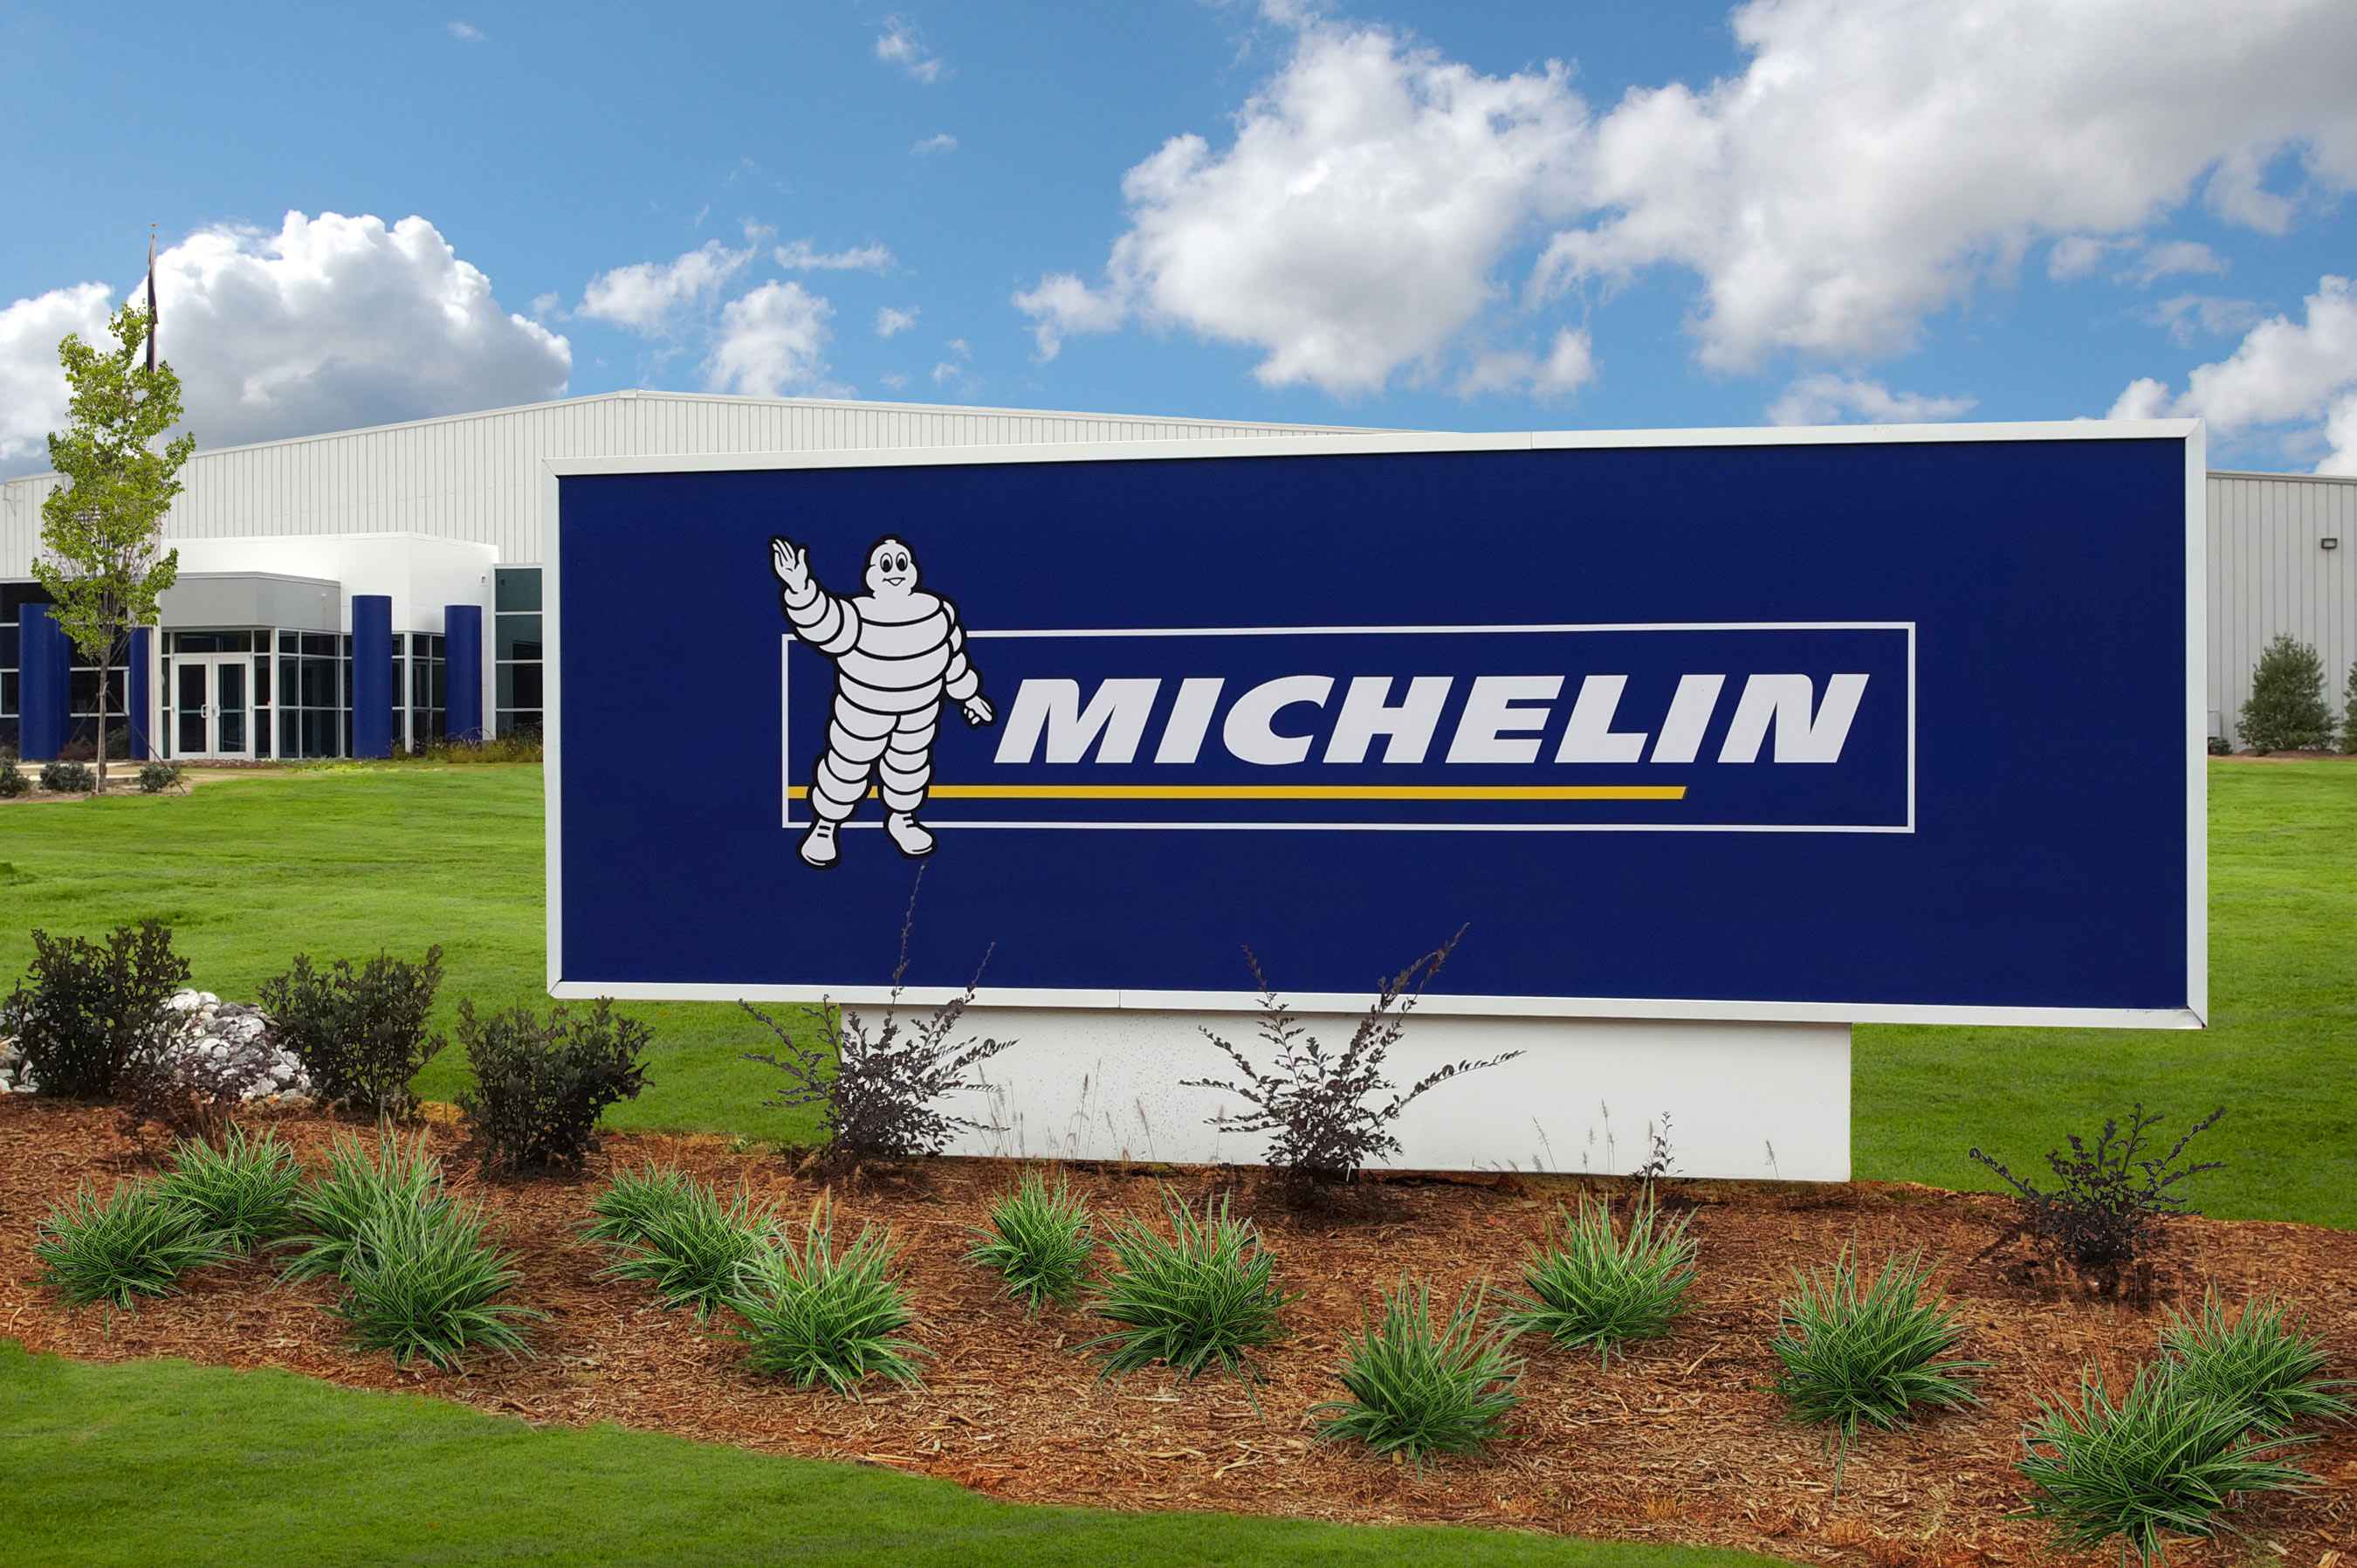 http://www.multivu.com/players/English/7381451-michelin-open-s-first-manufacturing-plant-tweel-airless-radial-tire/gallery/image/b60dcef5-f7be-45f4-b22c-afedcc41b397.HR.jpg